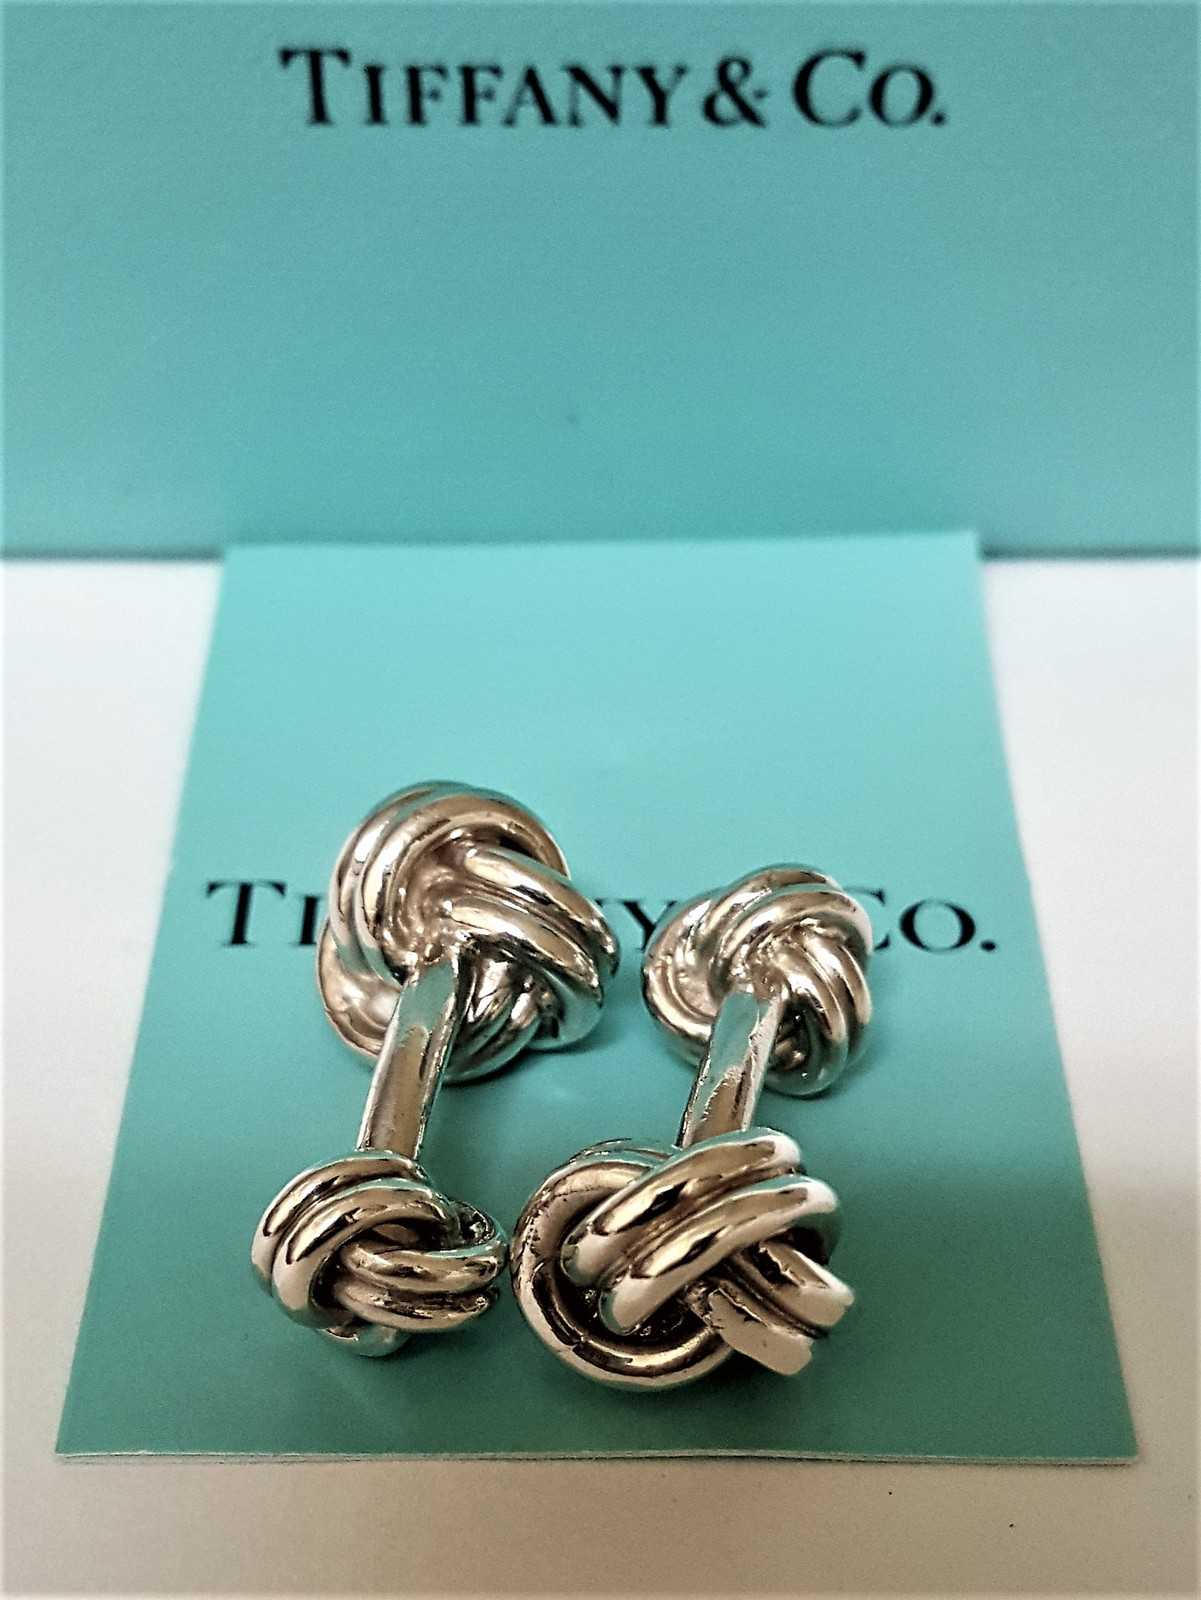 Tiffany Amp Co Cuff Links Double Love Knot 925 Silver